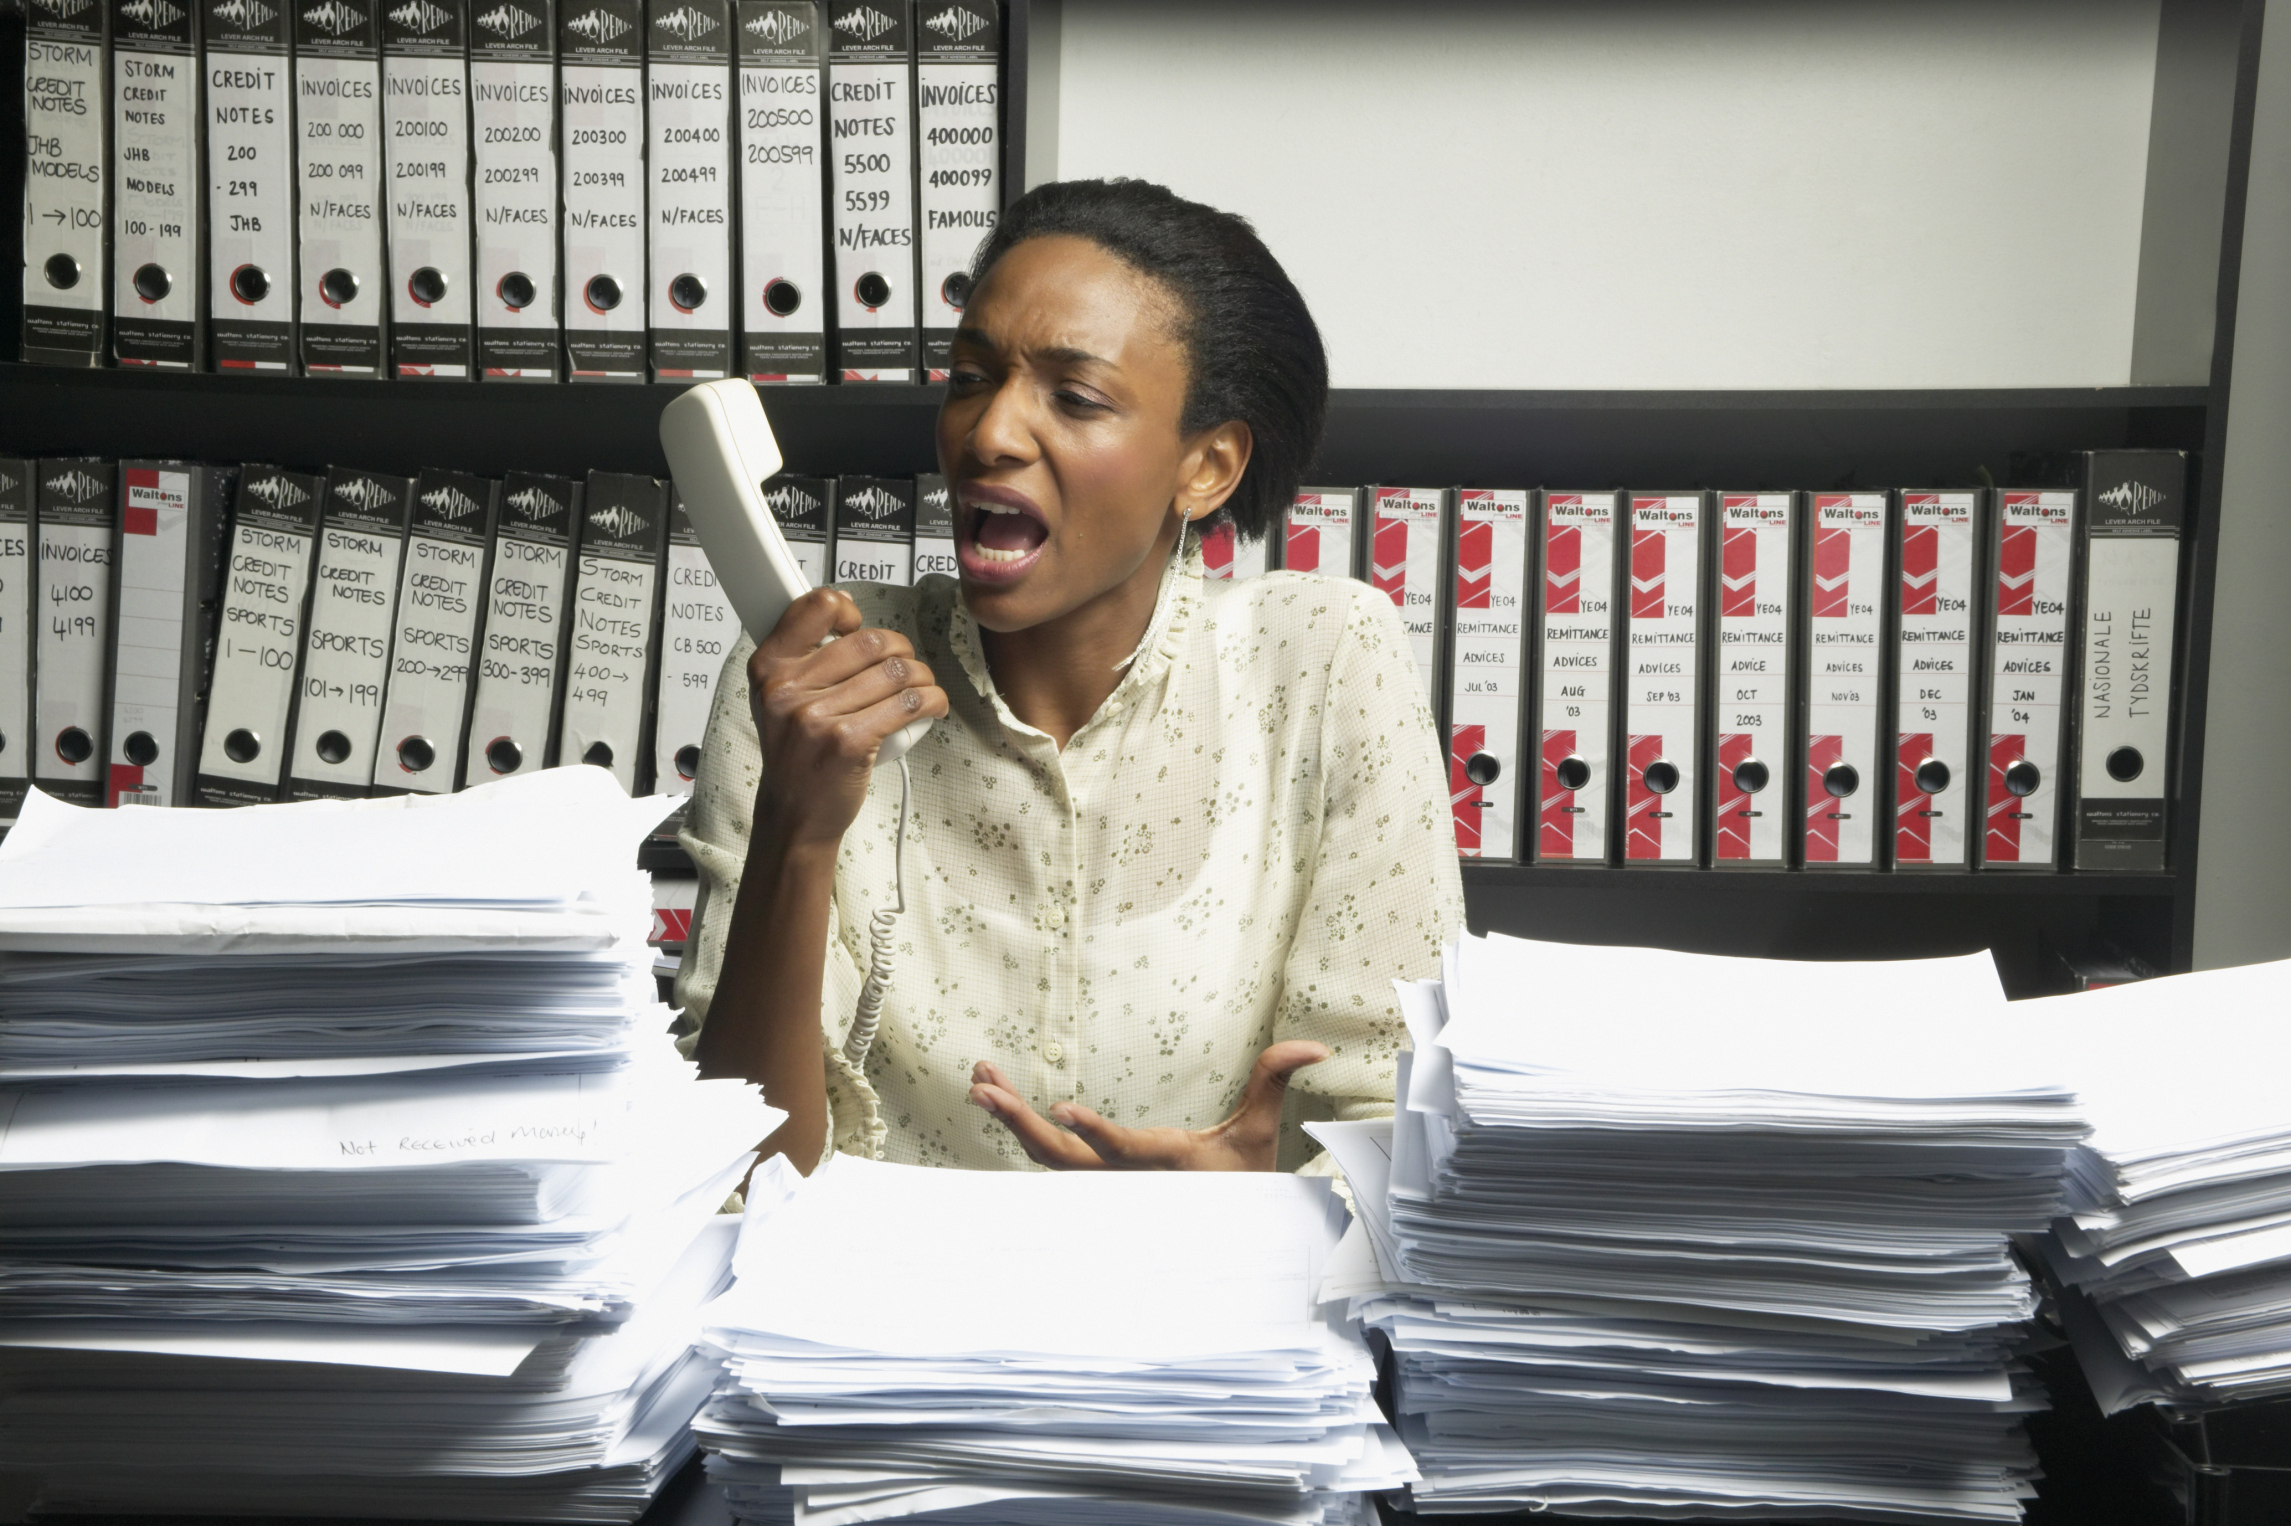 Female office worker at desk screaming into telephone receiver